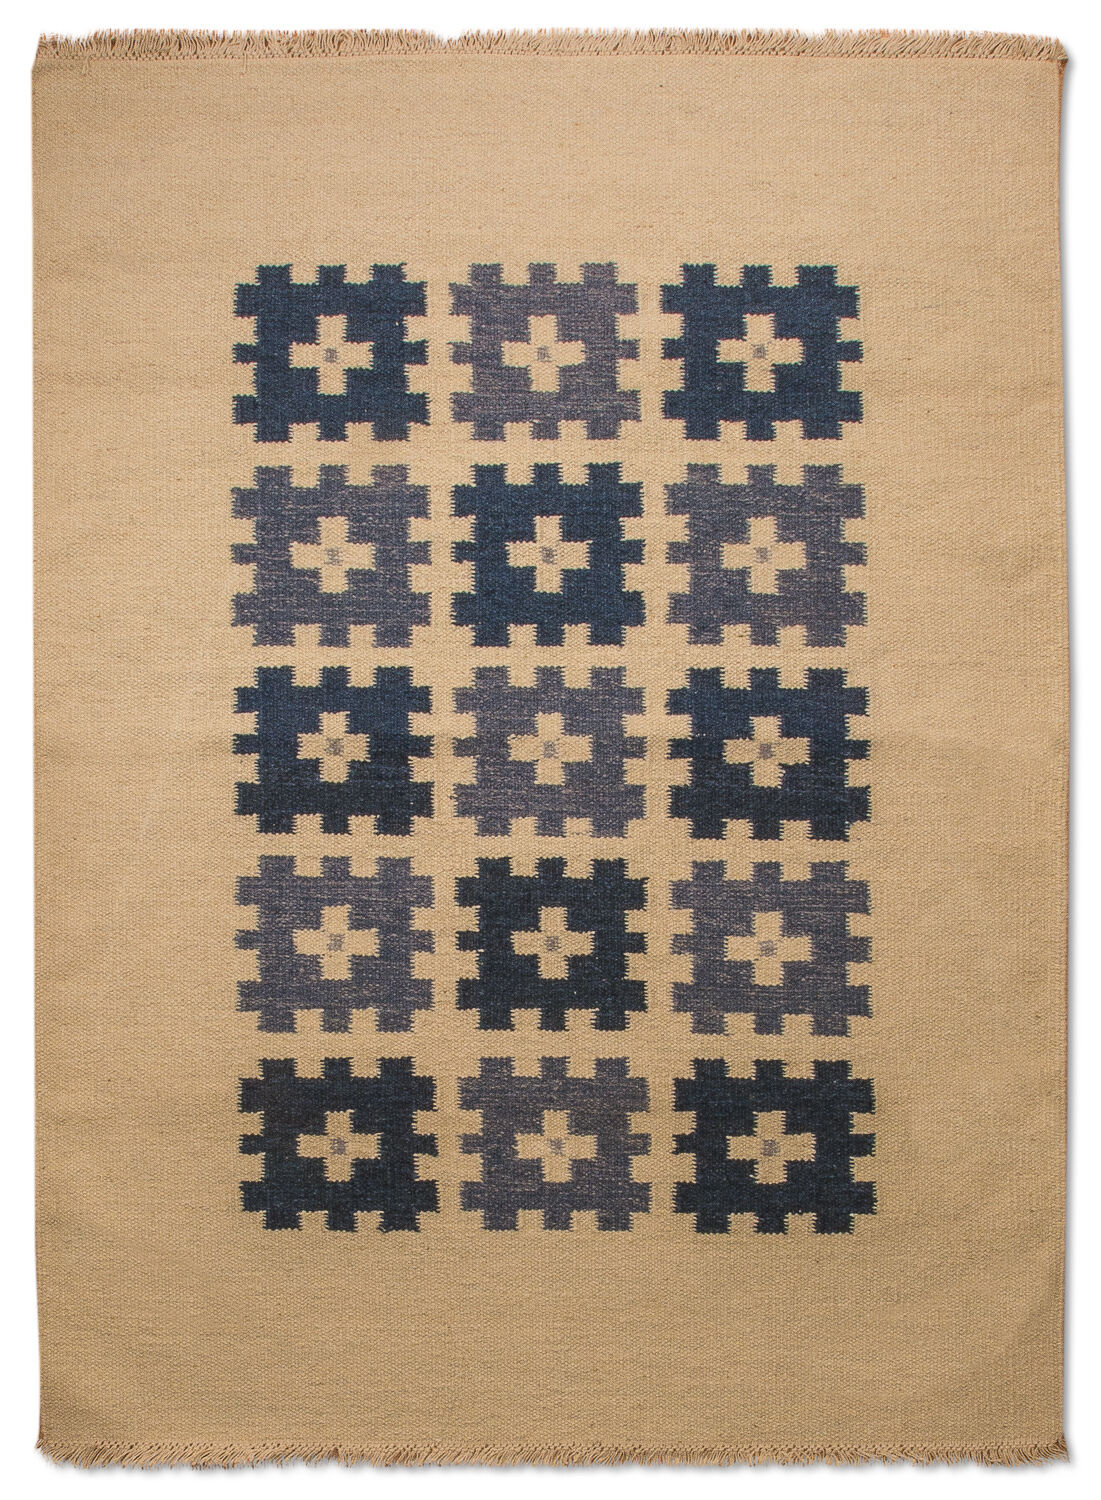 morgenland kelim kilim teppich erana handgewebt kurzflor schurwolle beige blau ebay. Black Bedroom Furniture Sets. Home Design Ideas